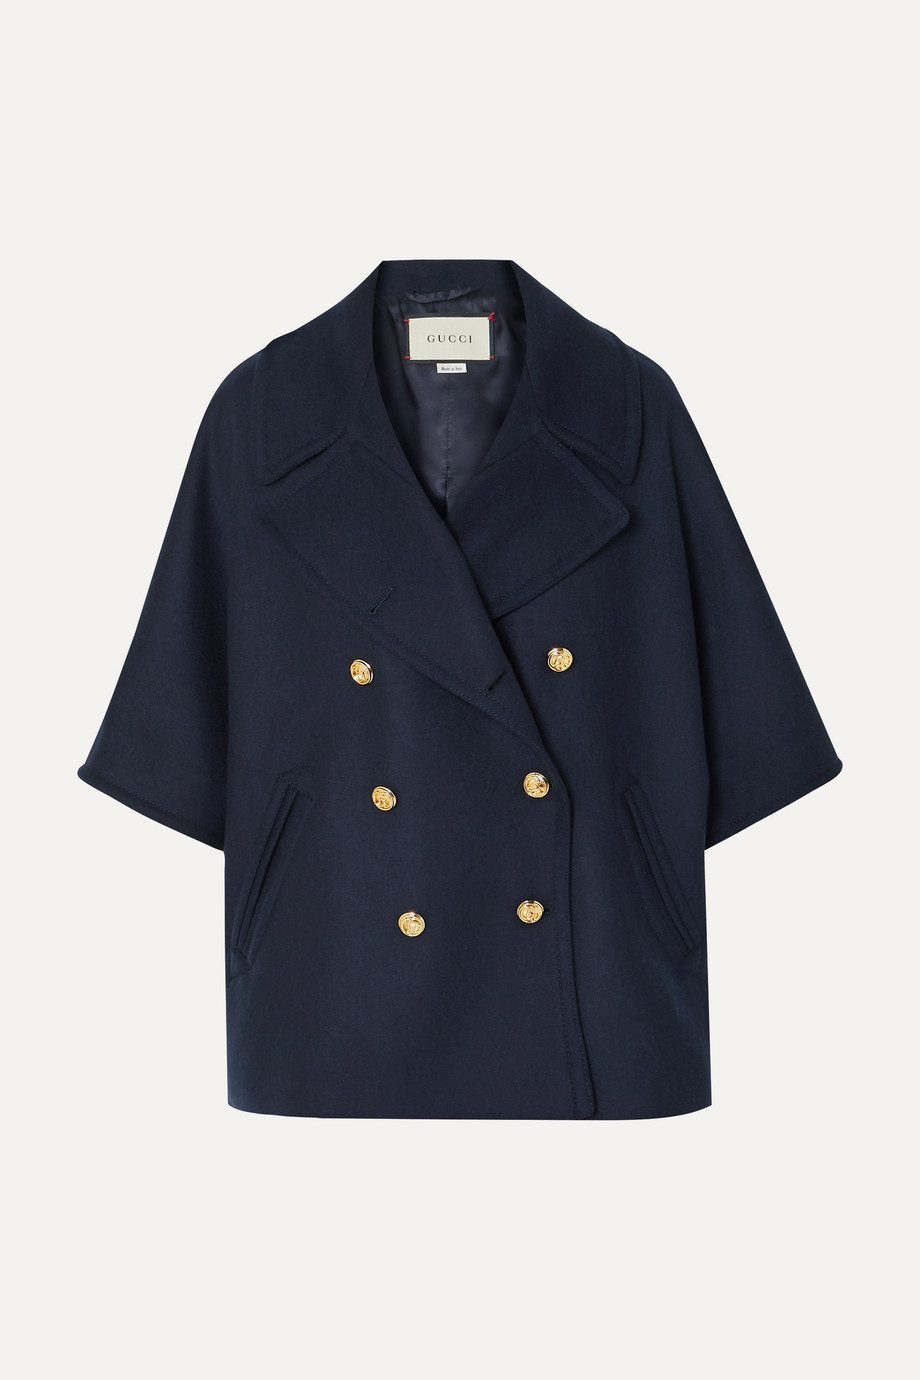 Gucci Cape-effect double-breasted wool-blend felt coat